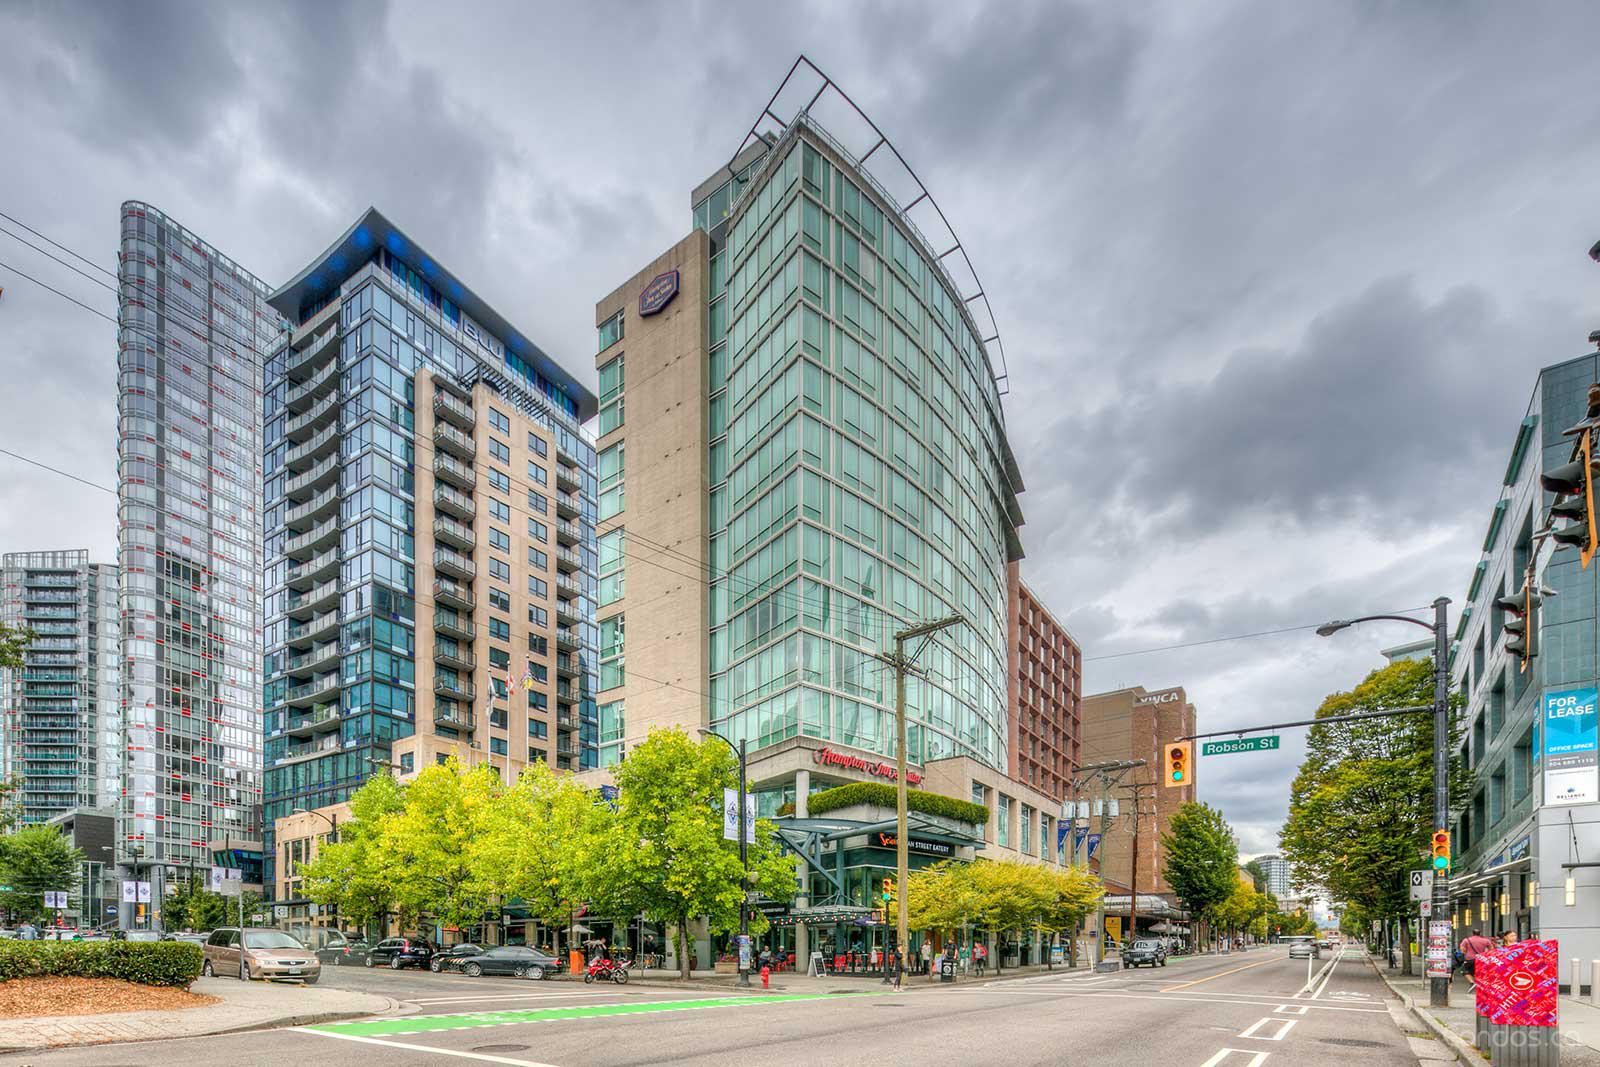 Hampton Inn & Suites at 111 Robson St, Vancouver 0